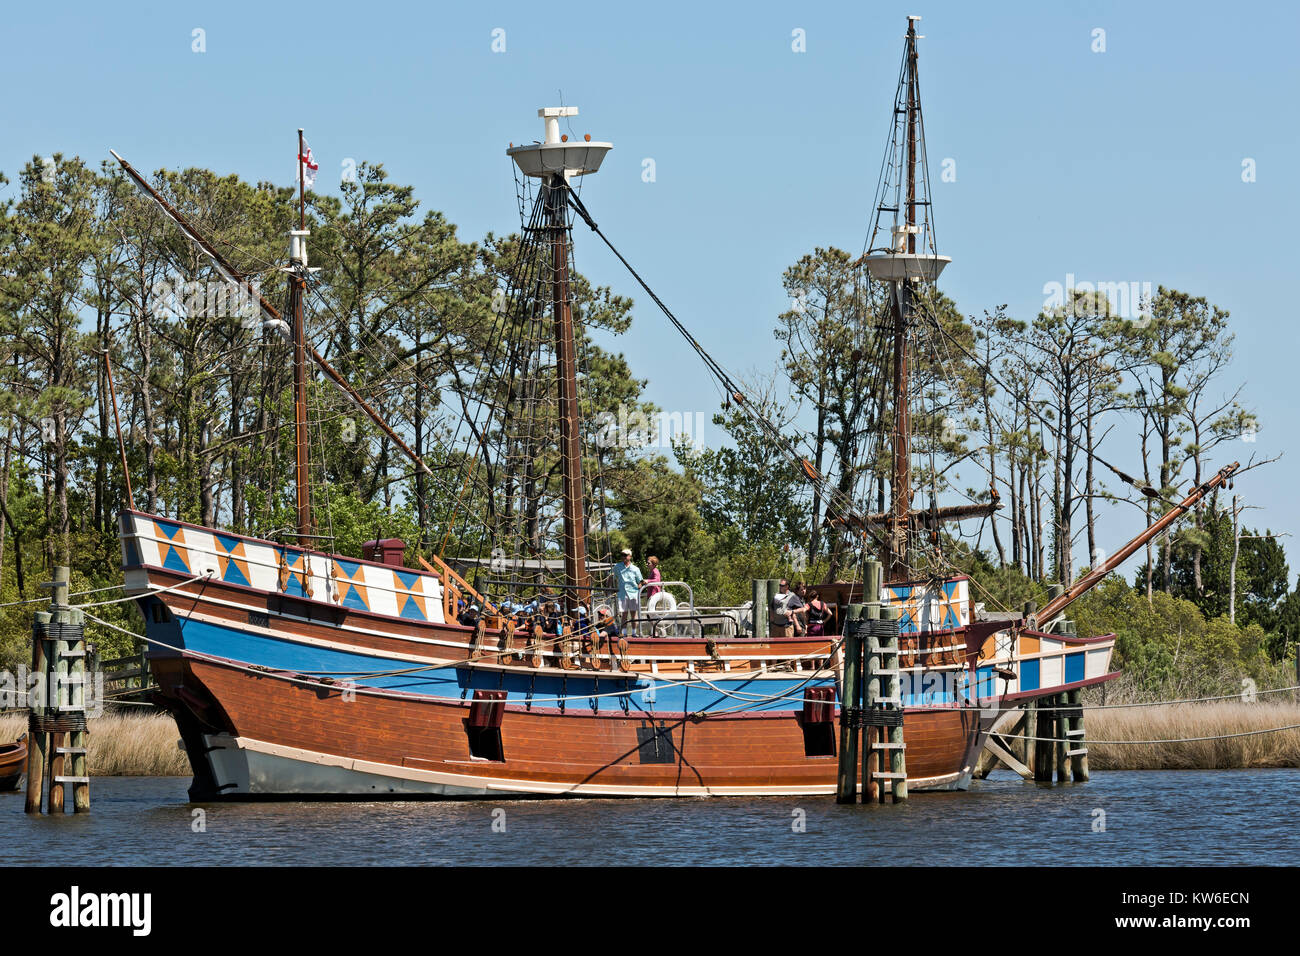 NC01196-00...NORTH CAROLINA - Visitors learning about the historic replica of the 16th Century Elizabeth ll, part - Stock Image